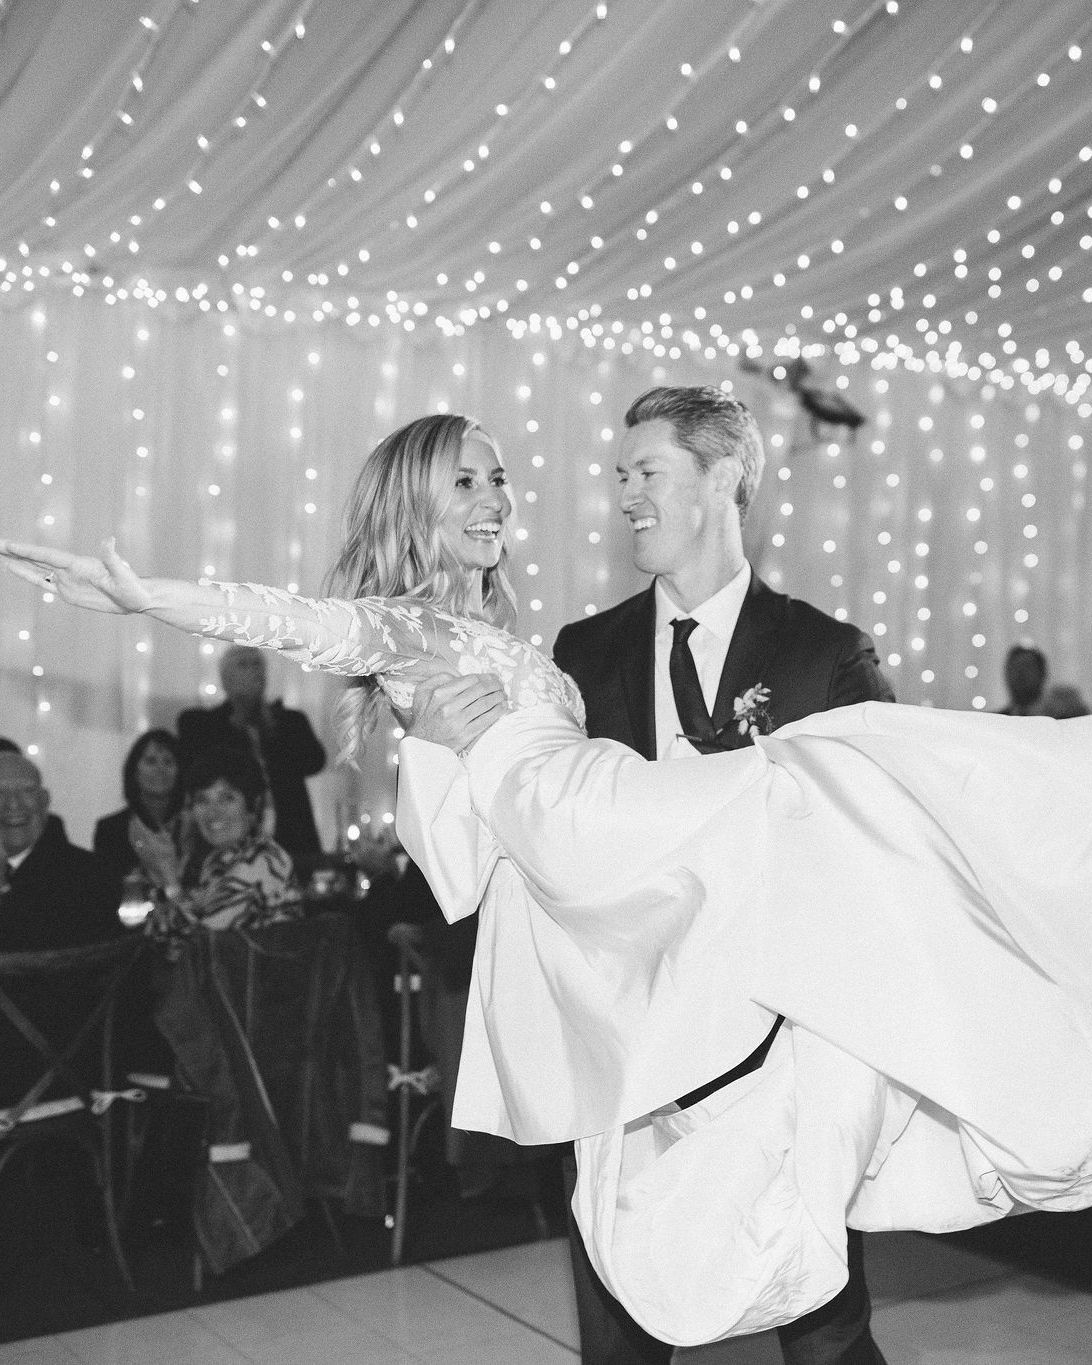 clare tim wedding groom carrying bride during dance